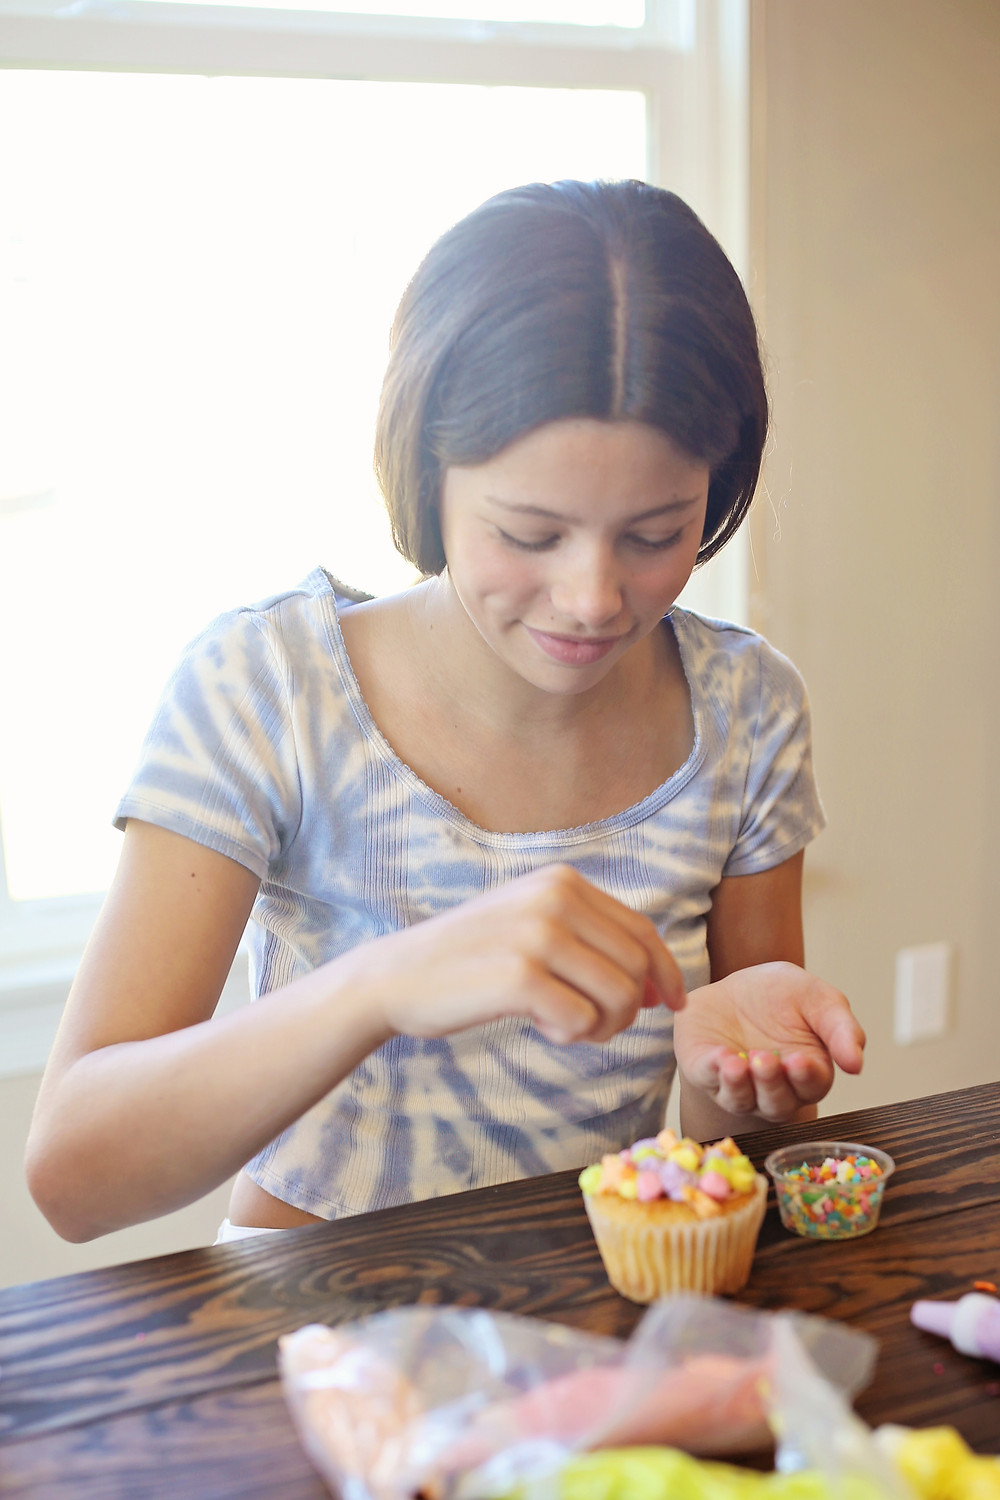 Putting sprinkles on a cupcake